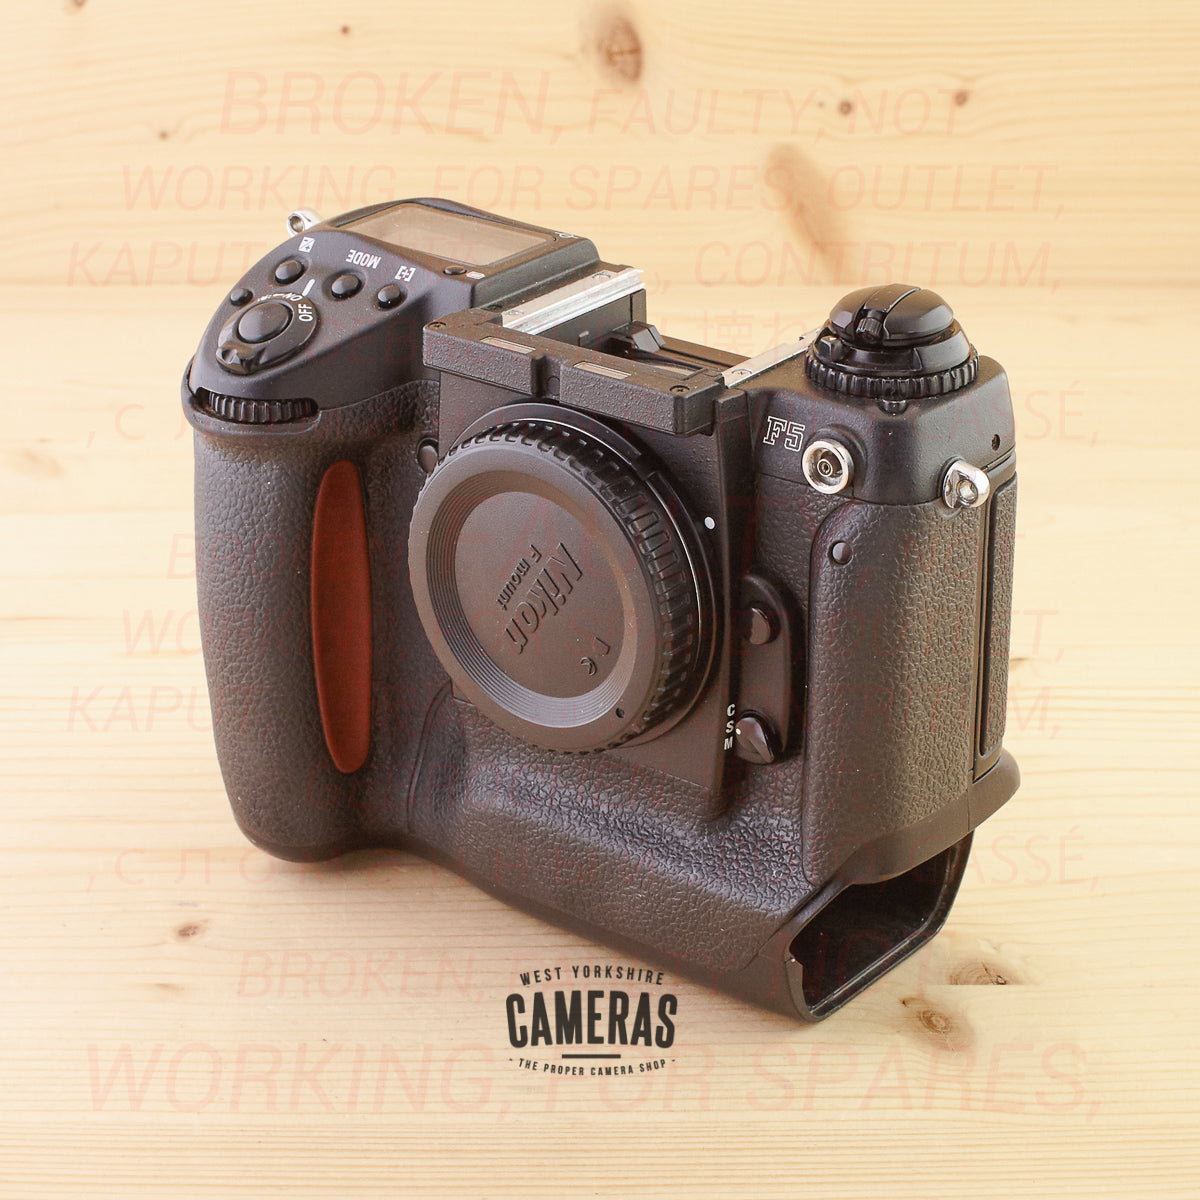 [OUTLET] Nikon F5 Body